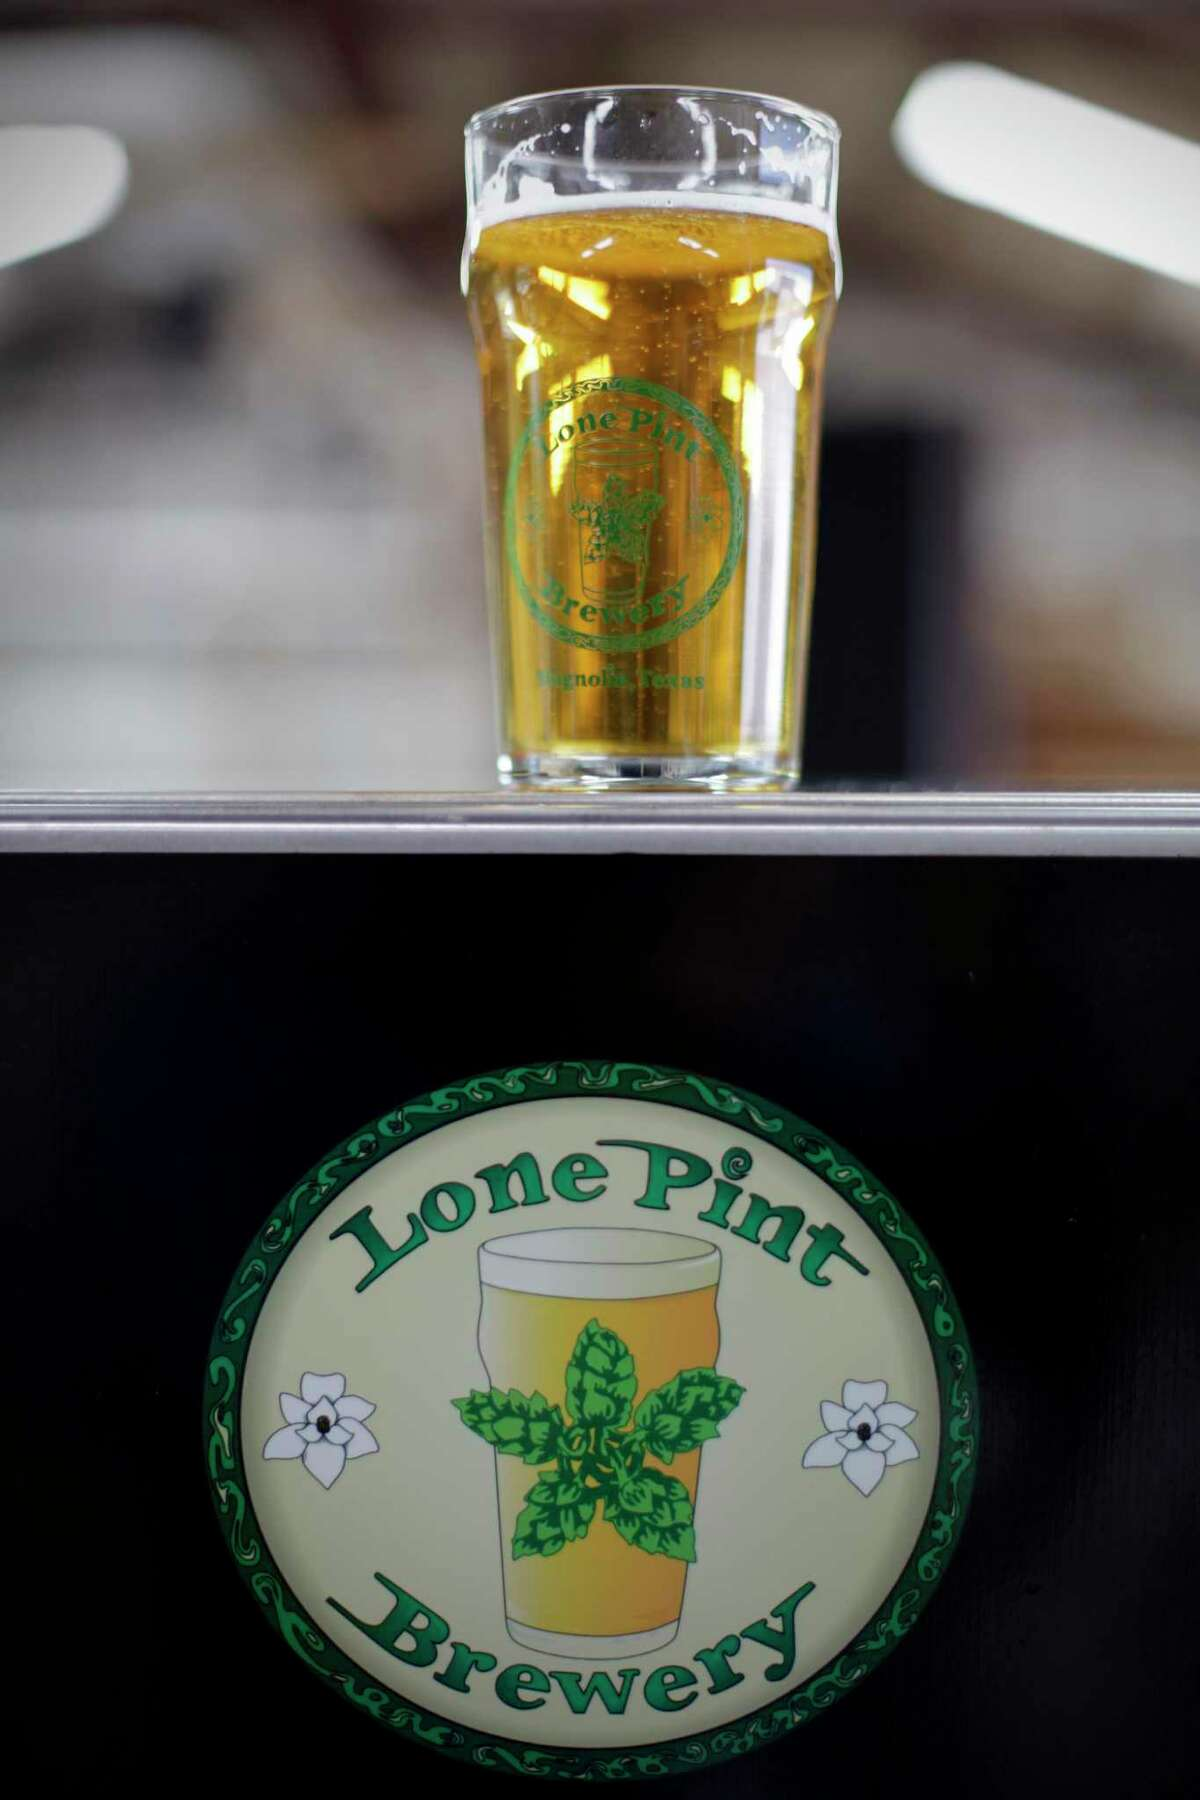 Lone Pint Brewery in Magnolia will celebrate with a New Year's Eve Black Light Party Dec. 31.